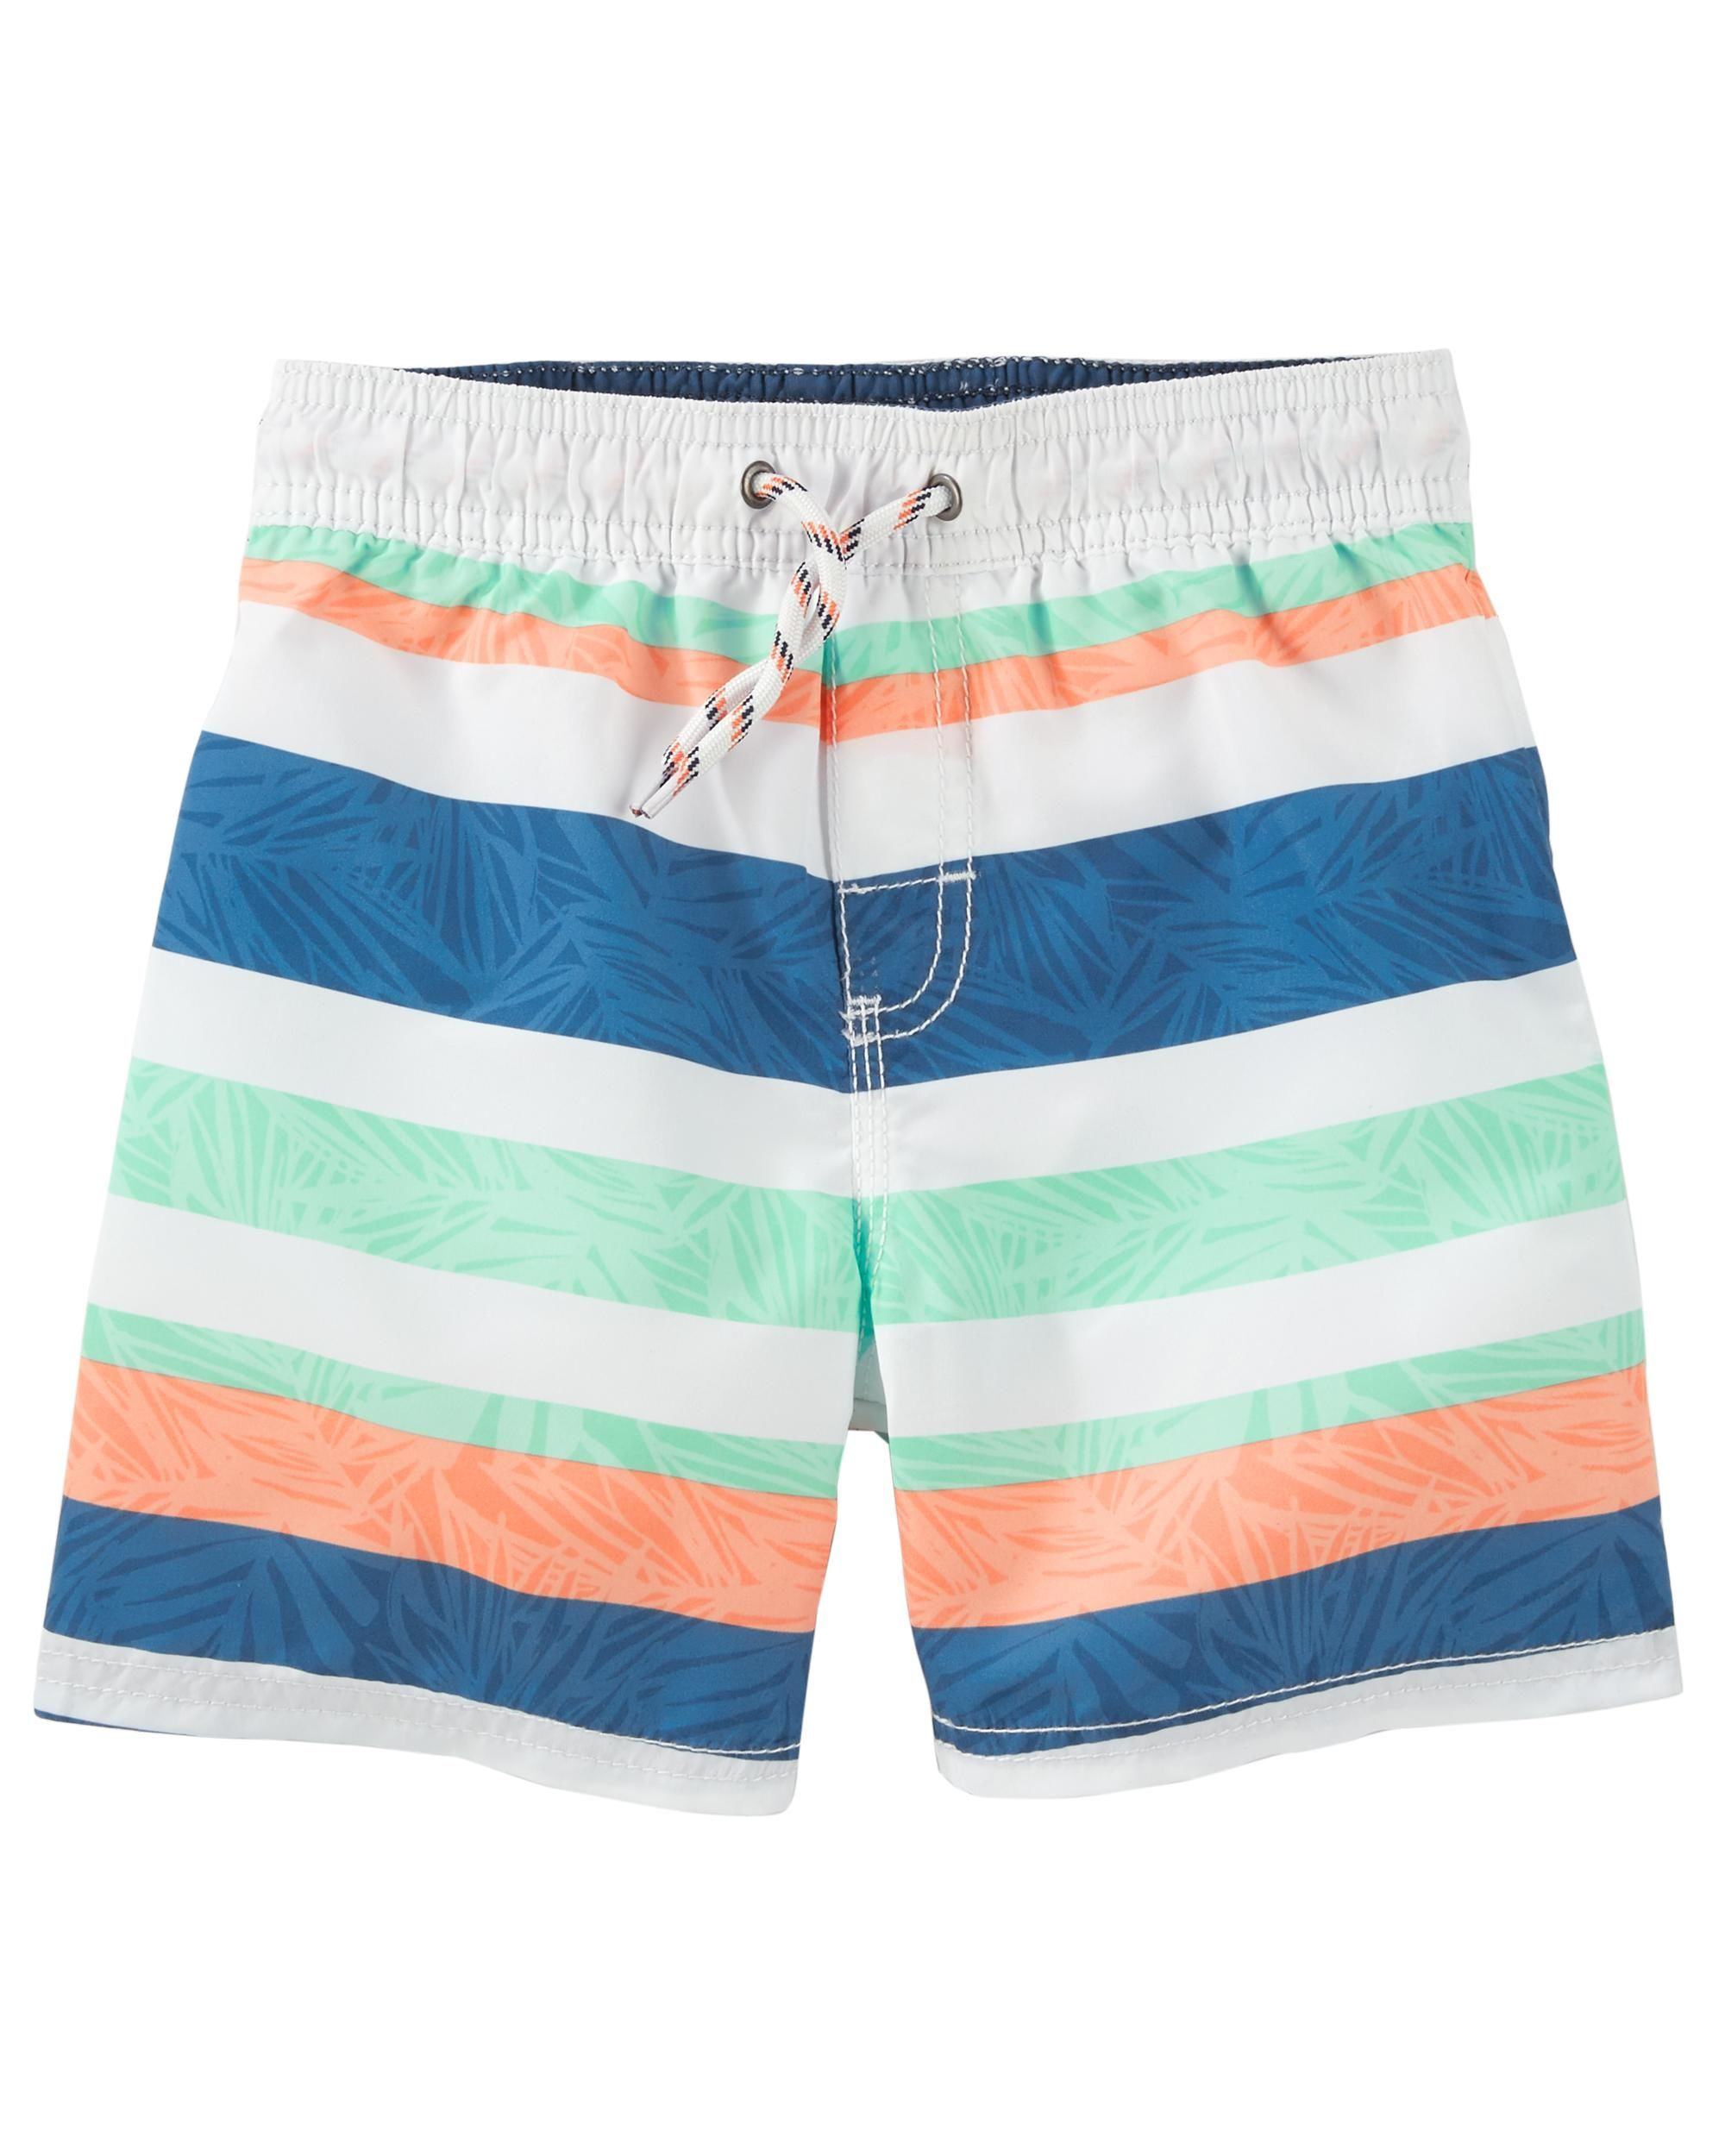 3dc36d92e3 Featuring multi-colored stripes, these trunks make for a winning look when  paired with a cool rashguard and matching flip flops!